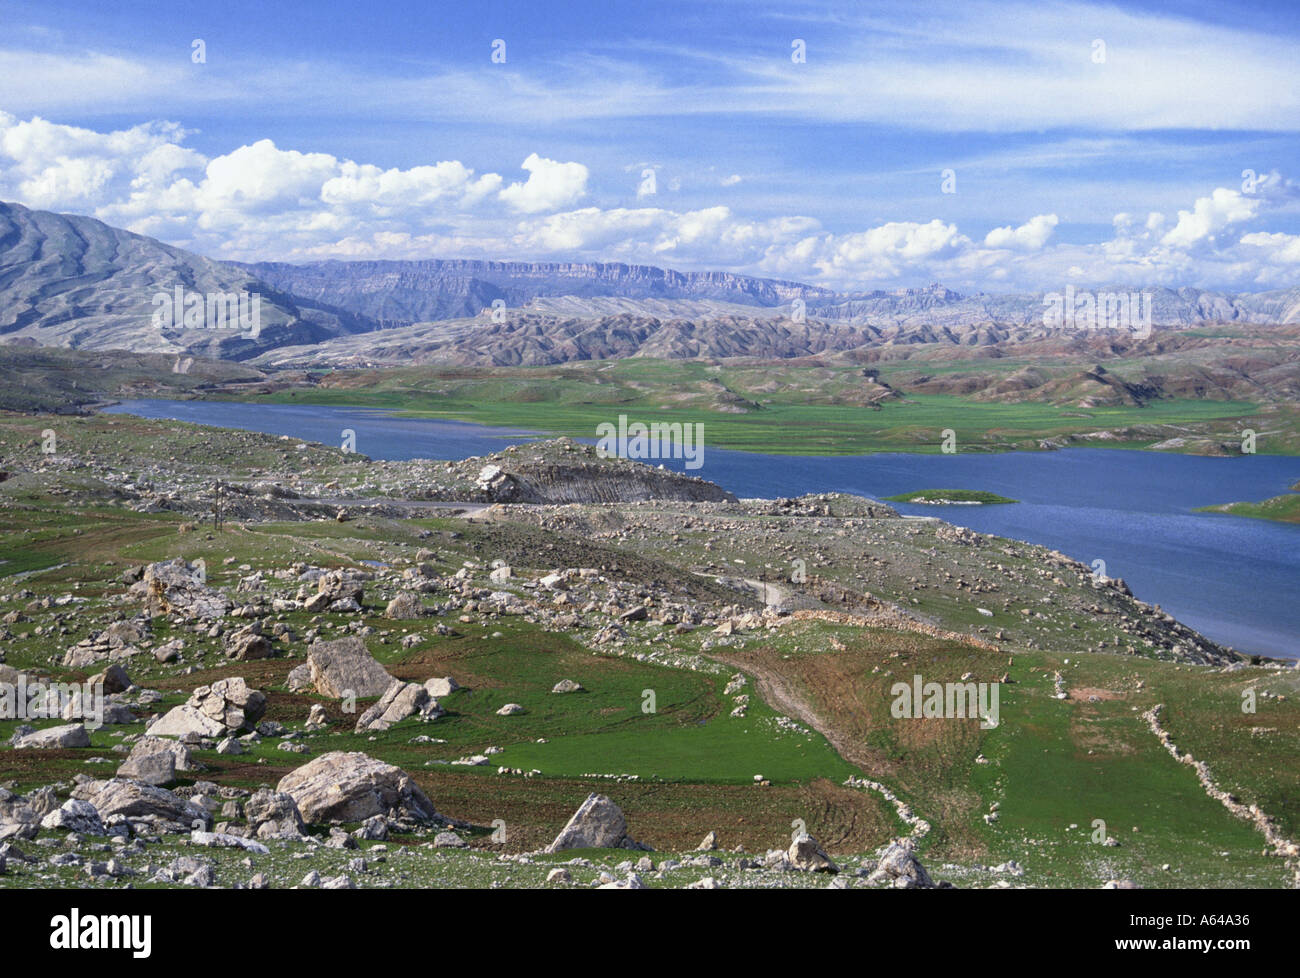 Iran hilly scenic and lake Des near Pol e Dochtar - Stock Image